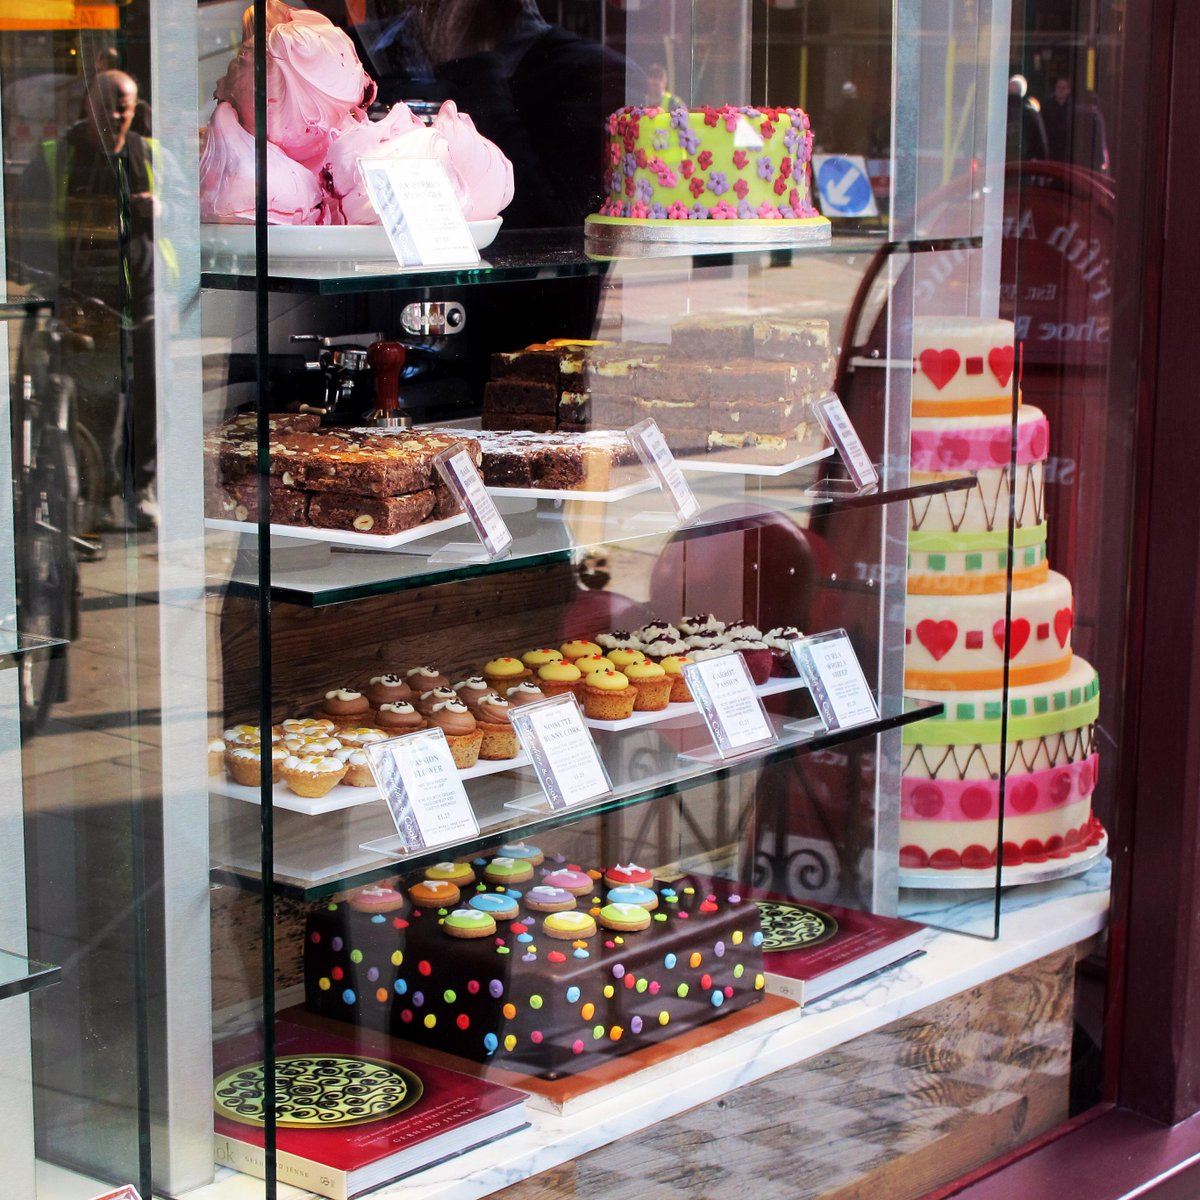 Like the window display at 39 #GoodgeStreet? RT for a chance to win a box of #brownies to pick up at the shop! http://t.co/F6oUyefOZN